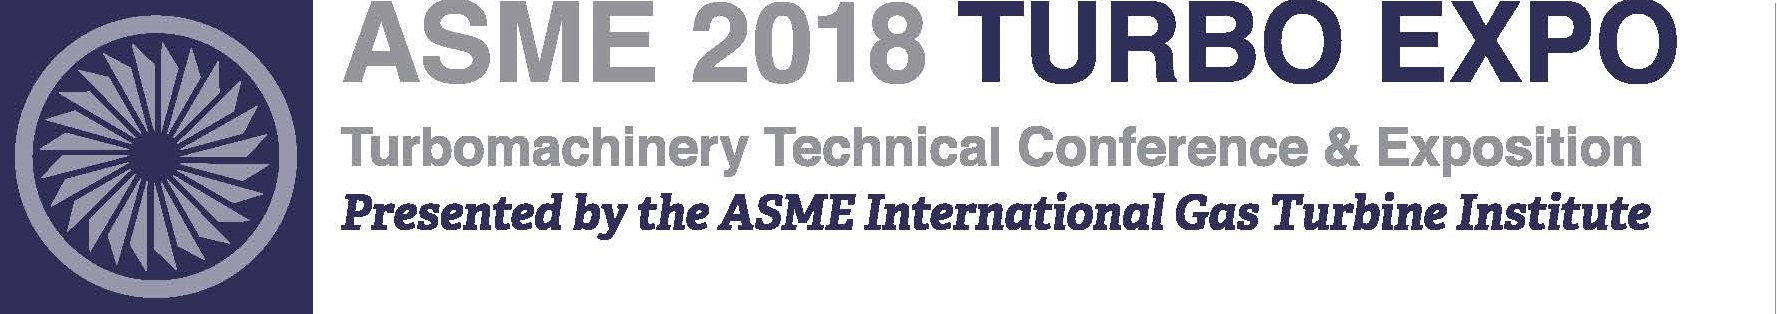 Asme Turbo Expo 2018 >> Asme Turbo Expo 2018 Etn